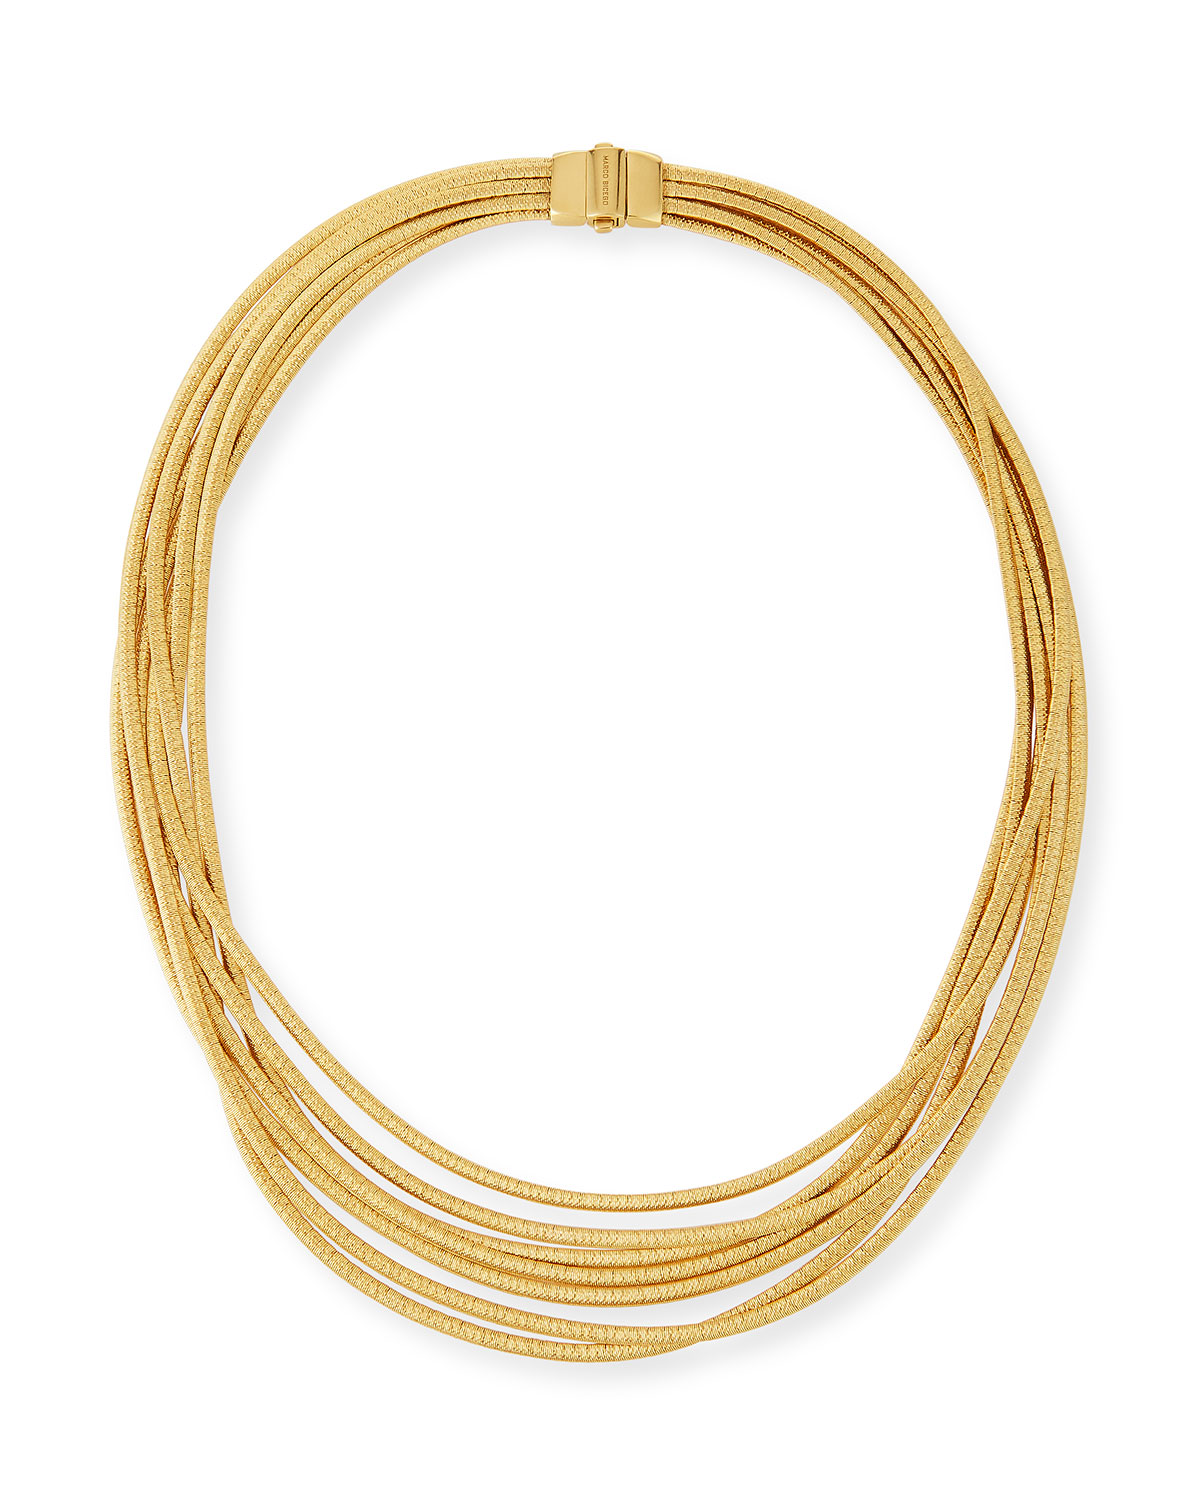 Marco Bicego Cairo 18k Seven-Strand Necklace